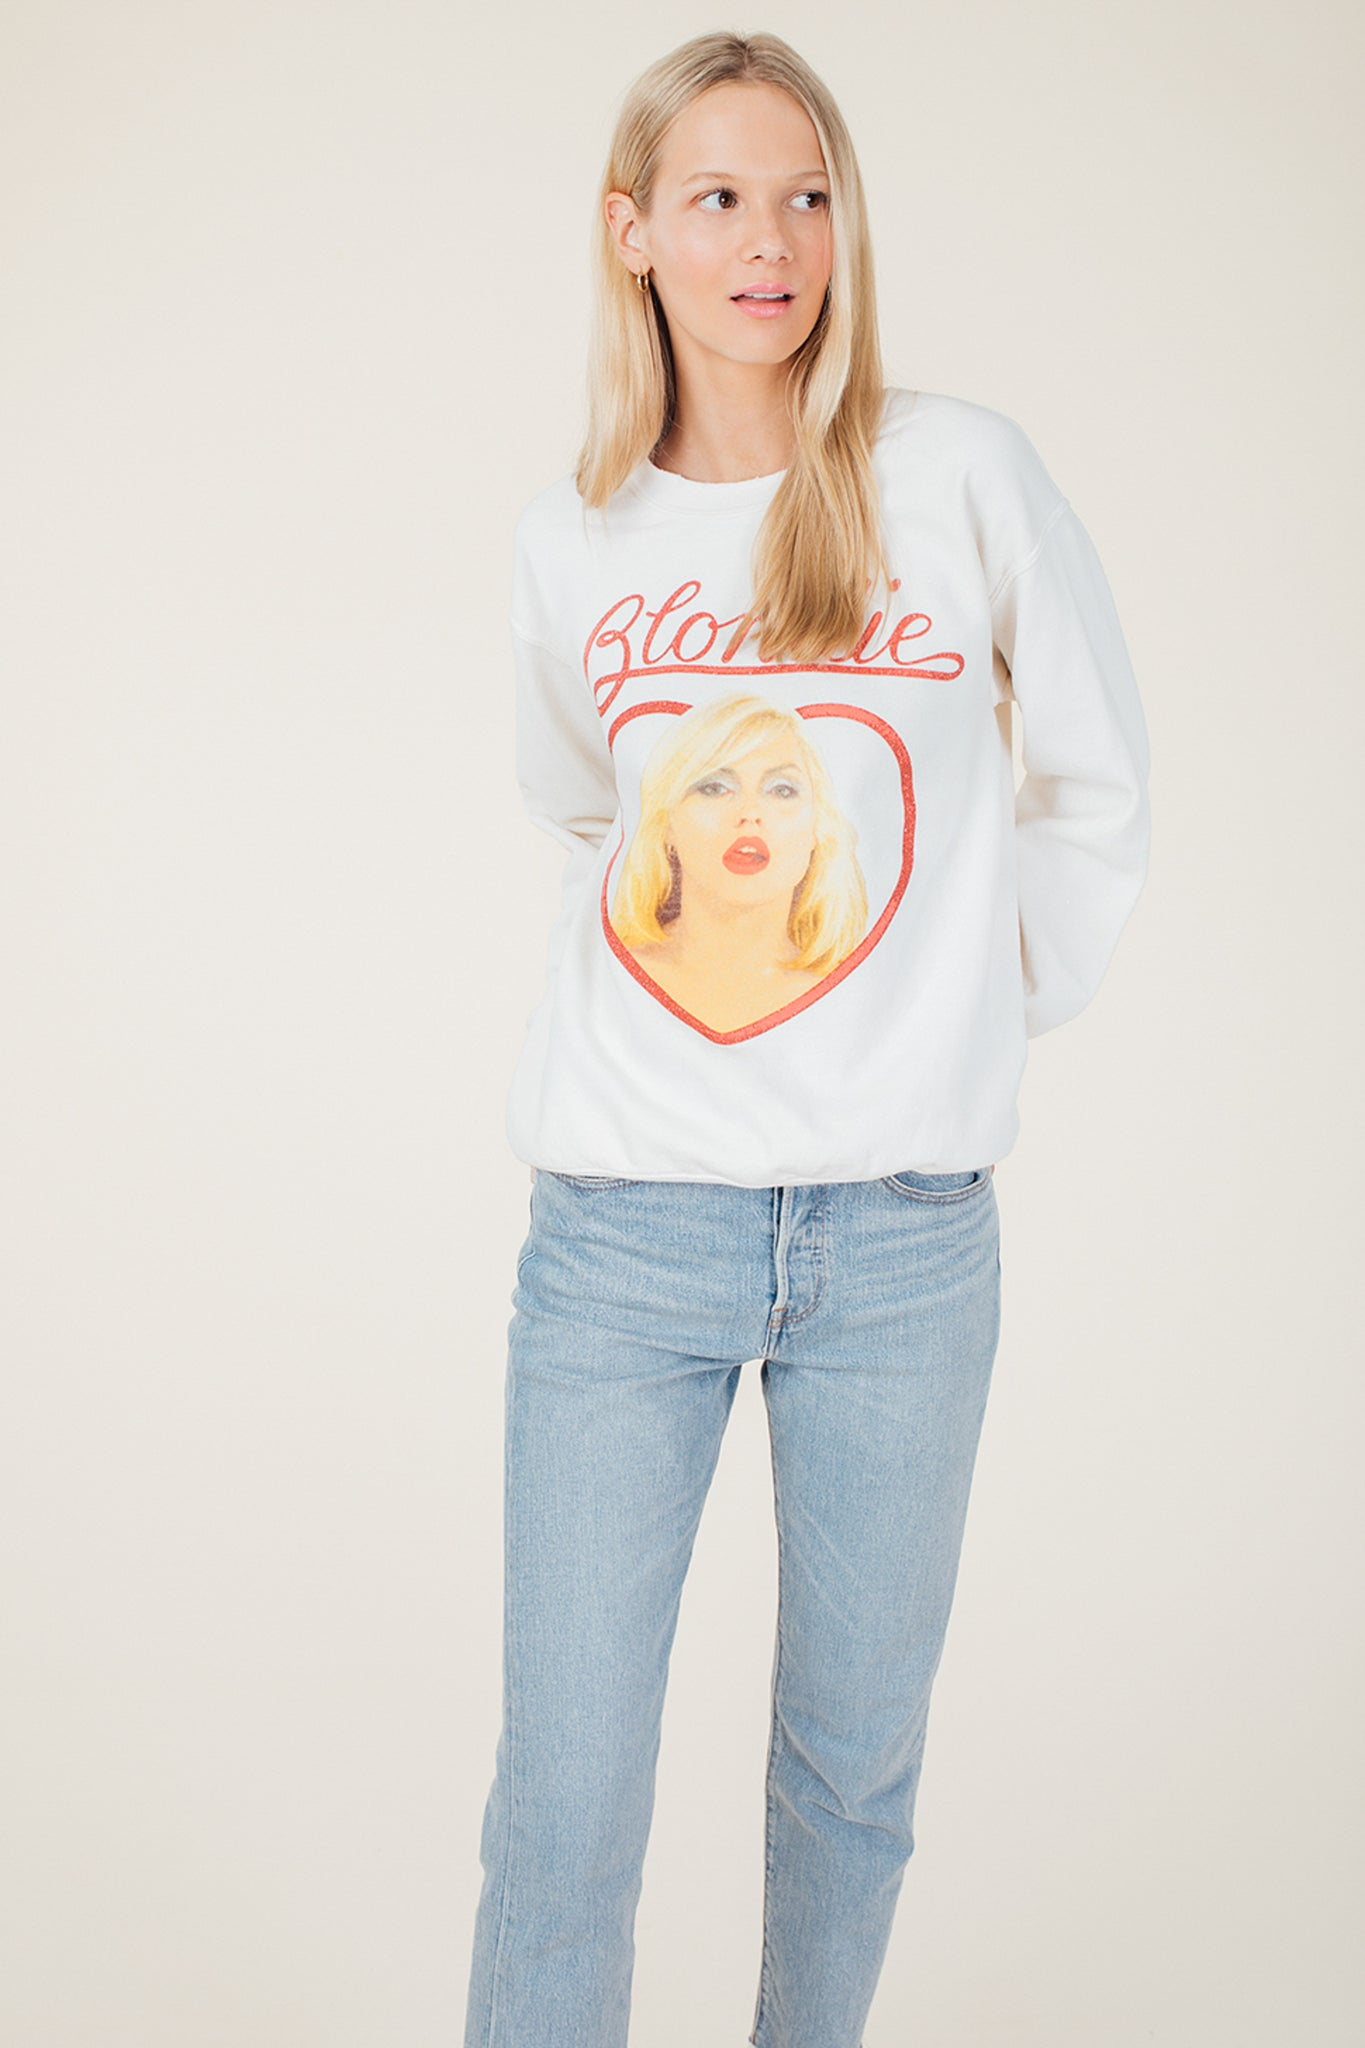 Blondie Glitter Sweatshirt - Wylie Grey 1